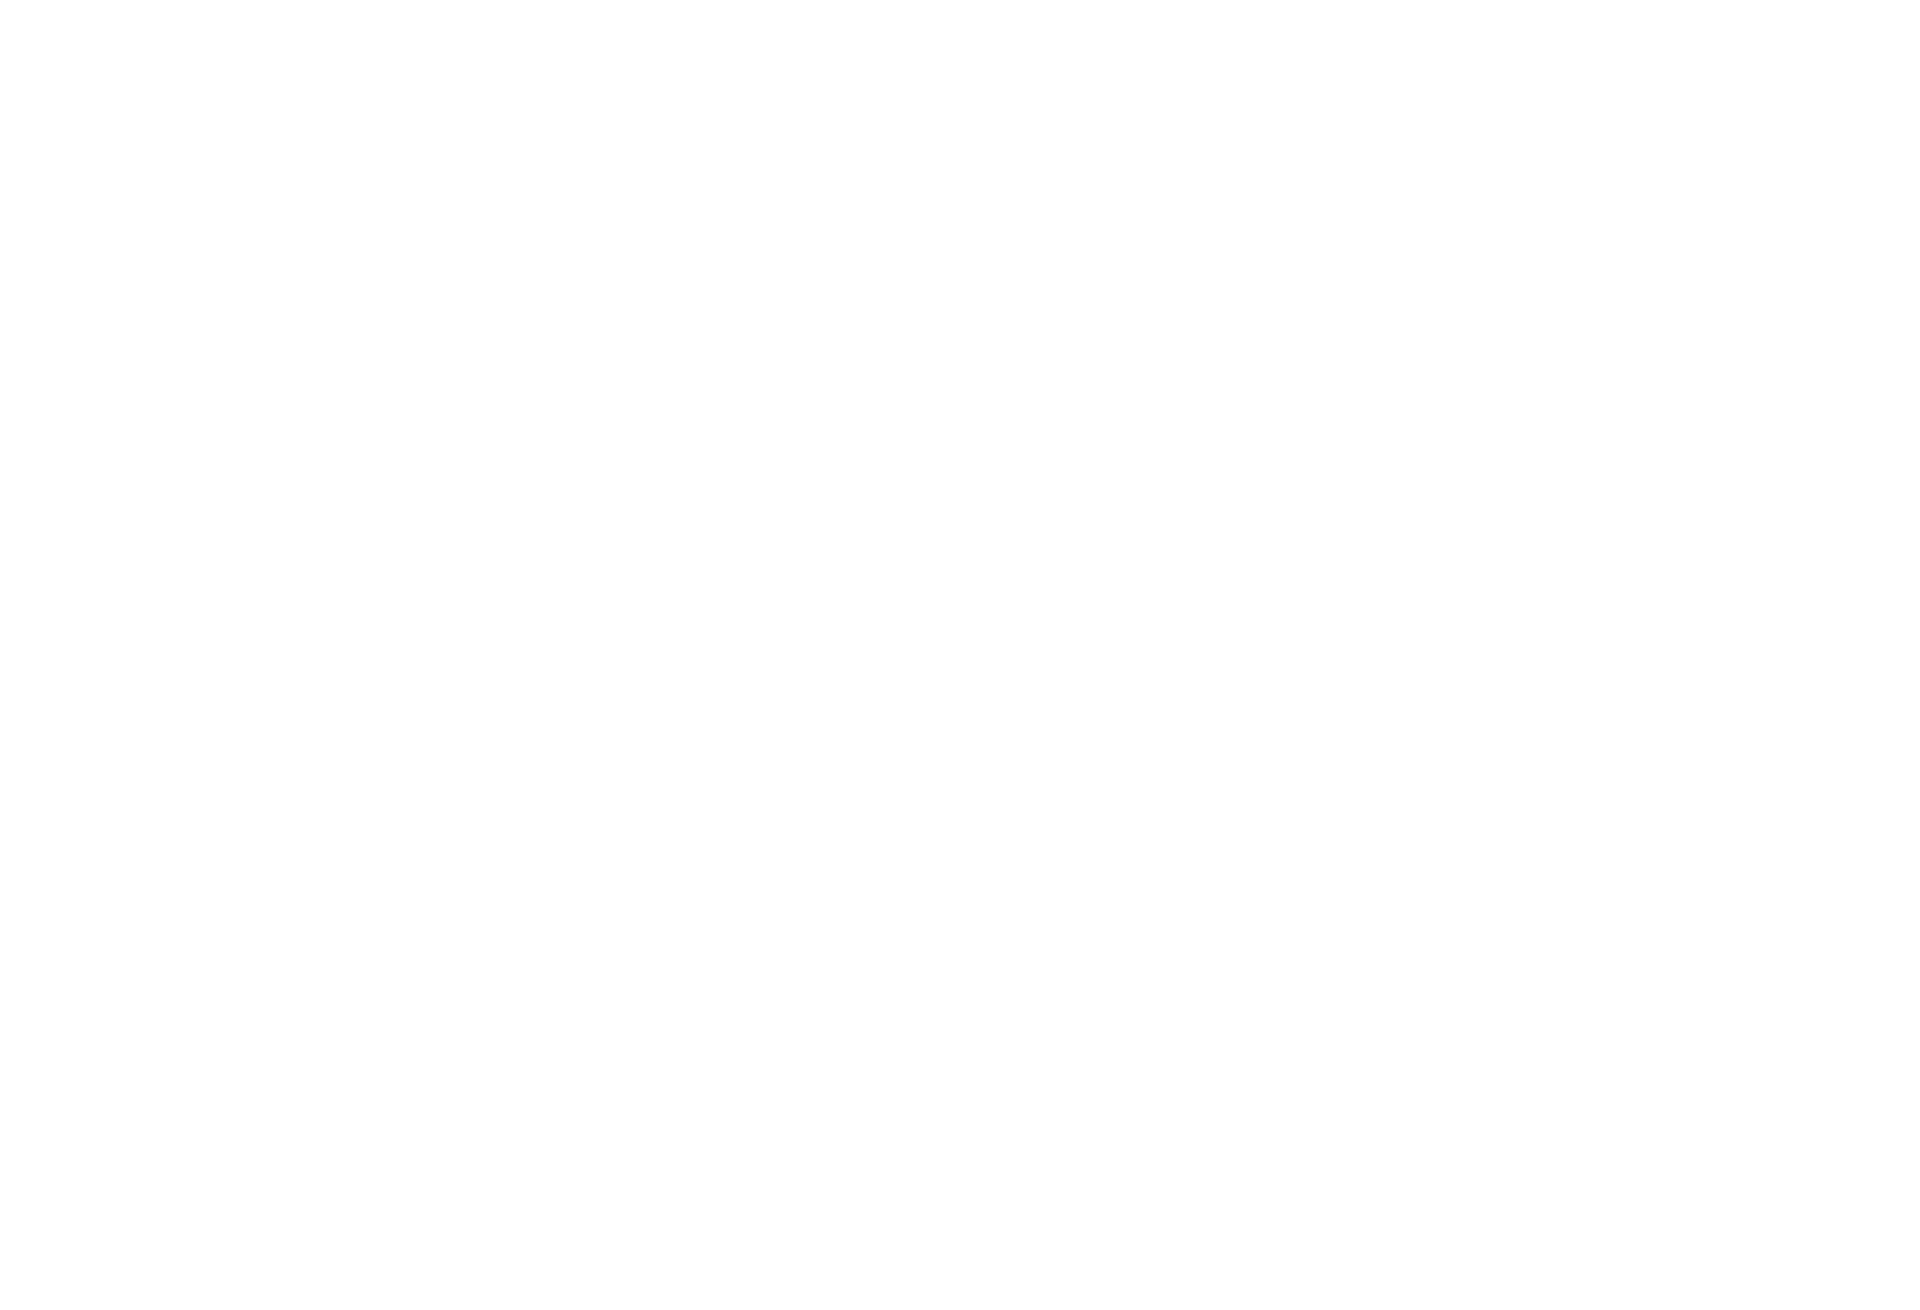 Johnson City Grand Opening.